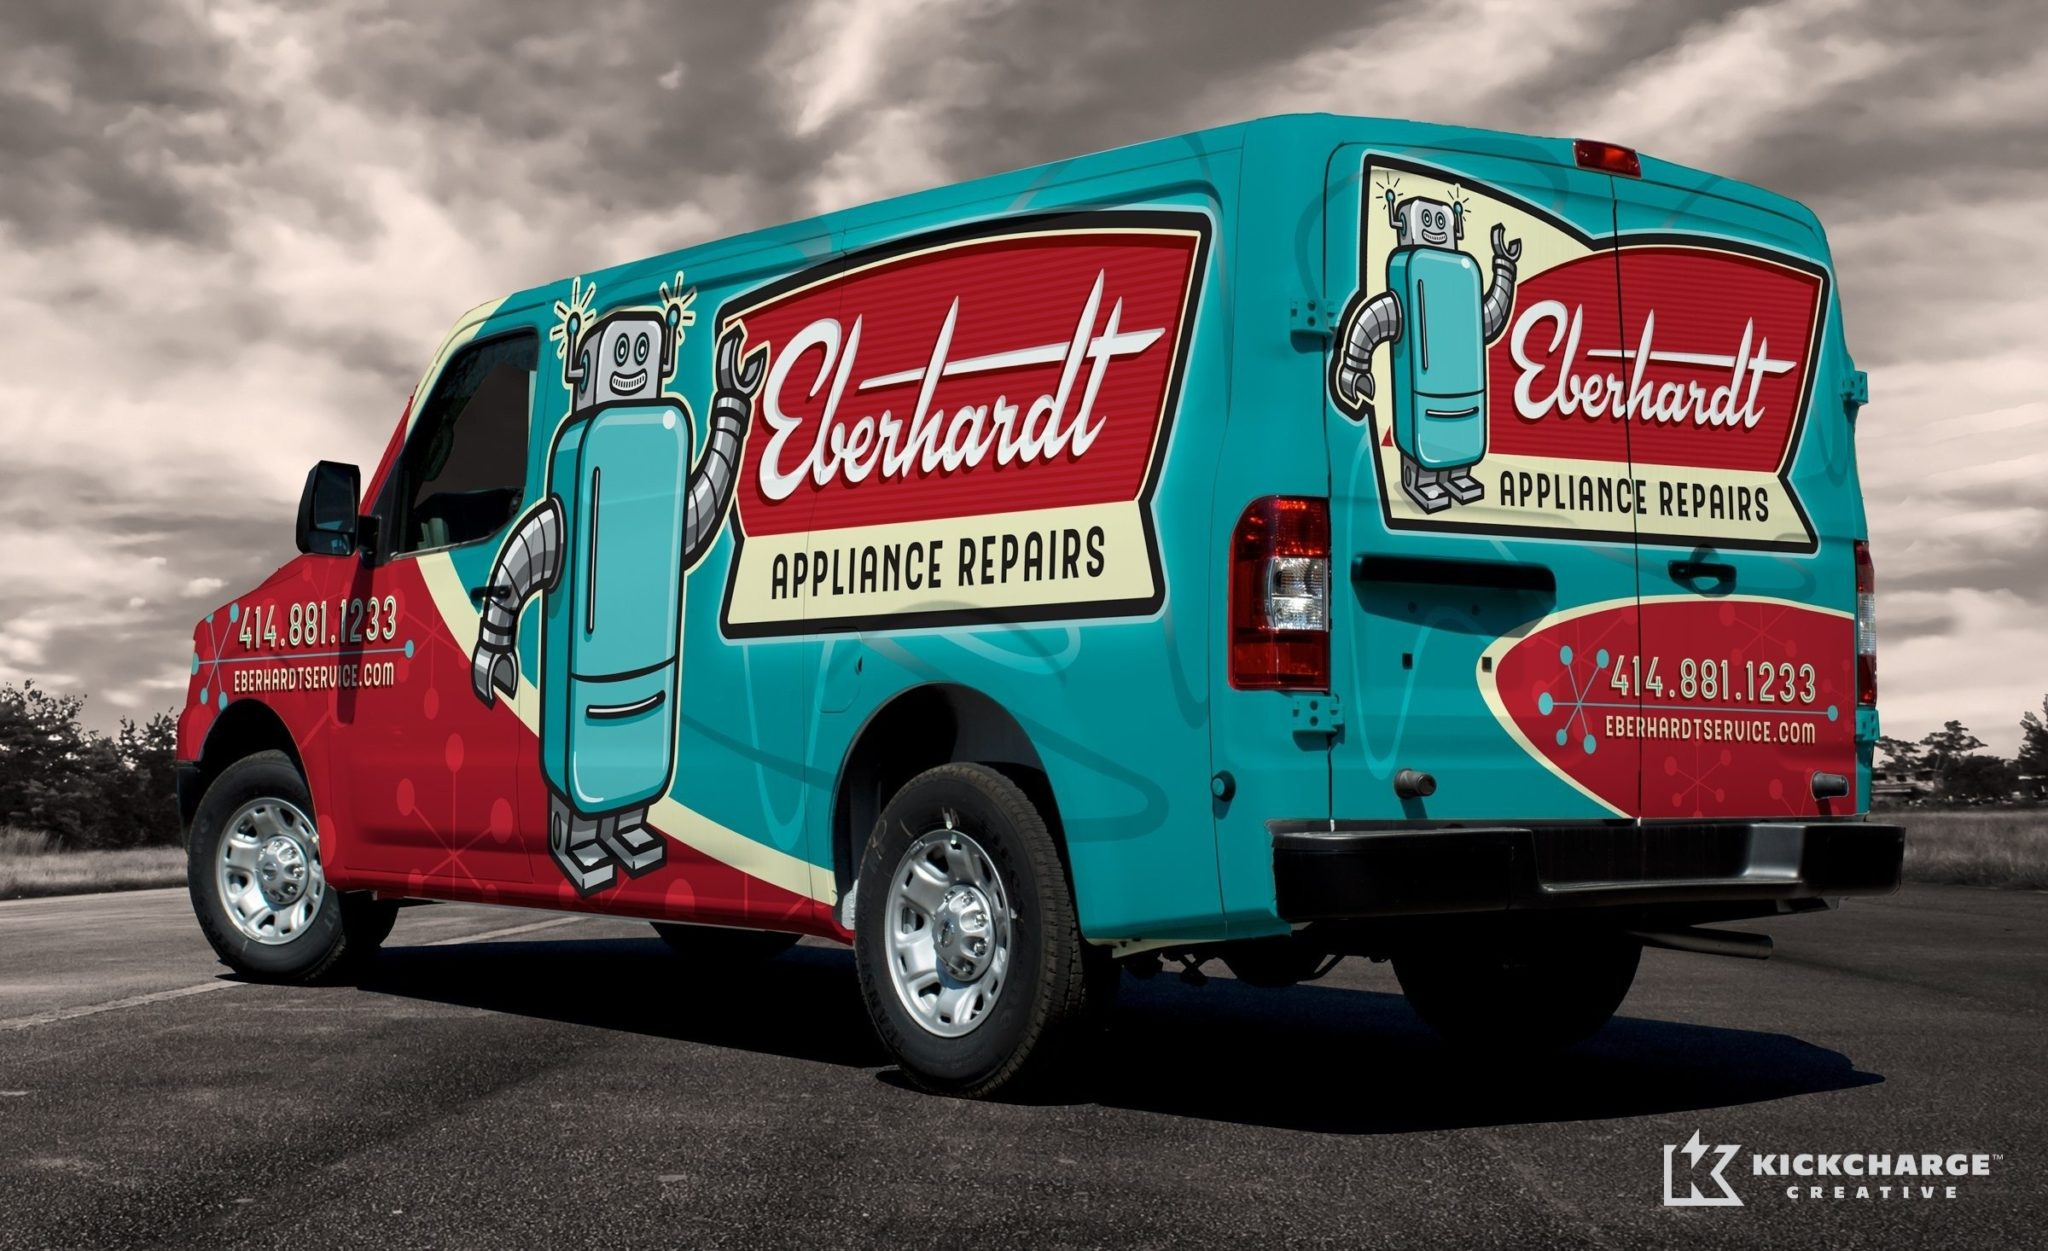 Eberhardt Appliance Repairs Kickcharge Creative